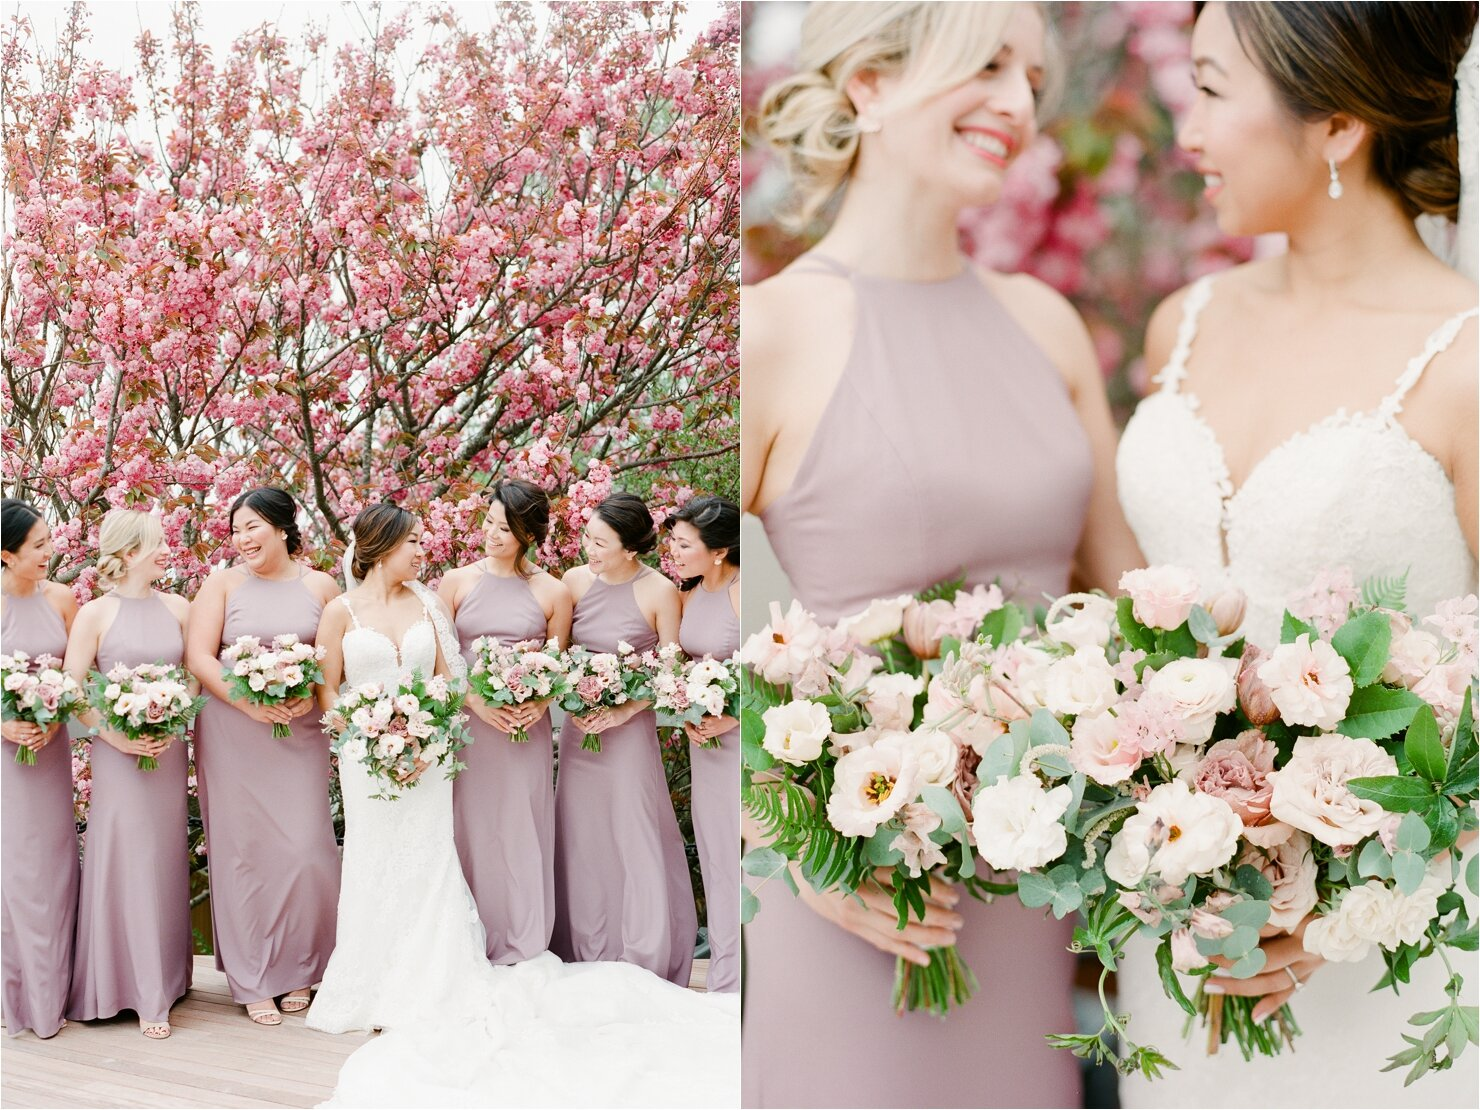 Lavender Bridesmaids Dresses at Gurney's Montauk